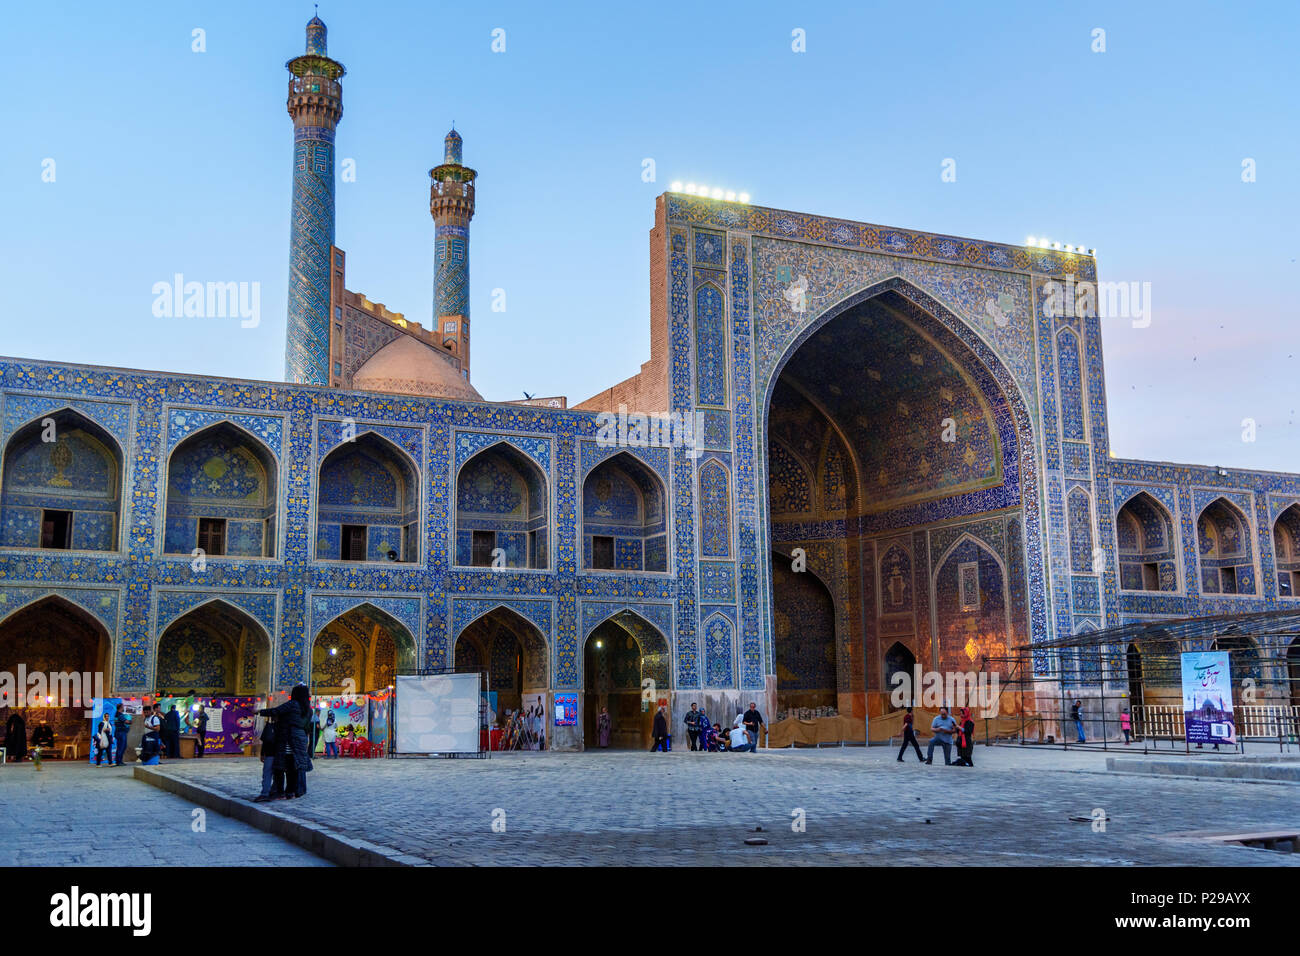 Isfahan, Iran - March 21, 2018: Yard of Shah Mosque or Imam Mosque in evening - Stock Image